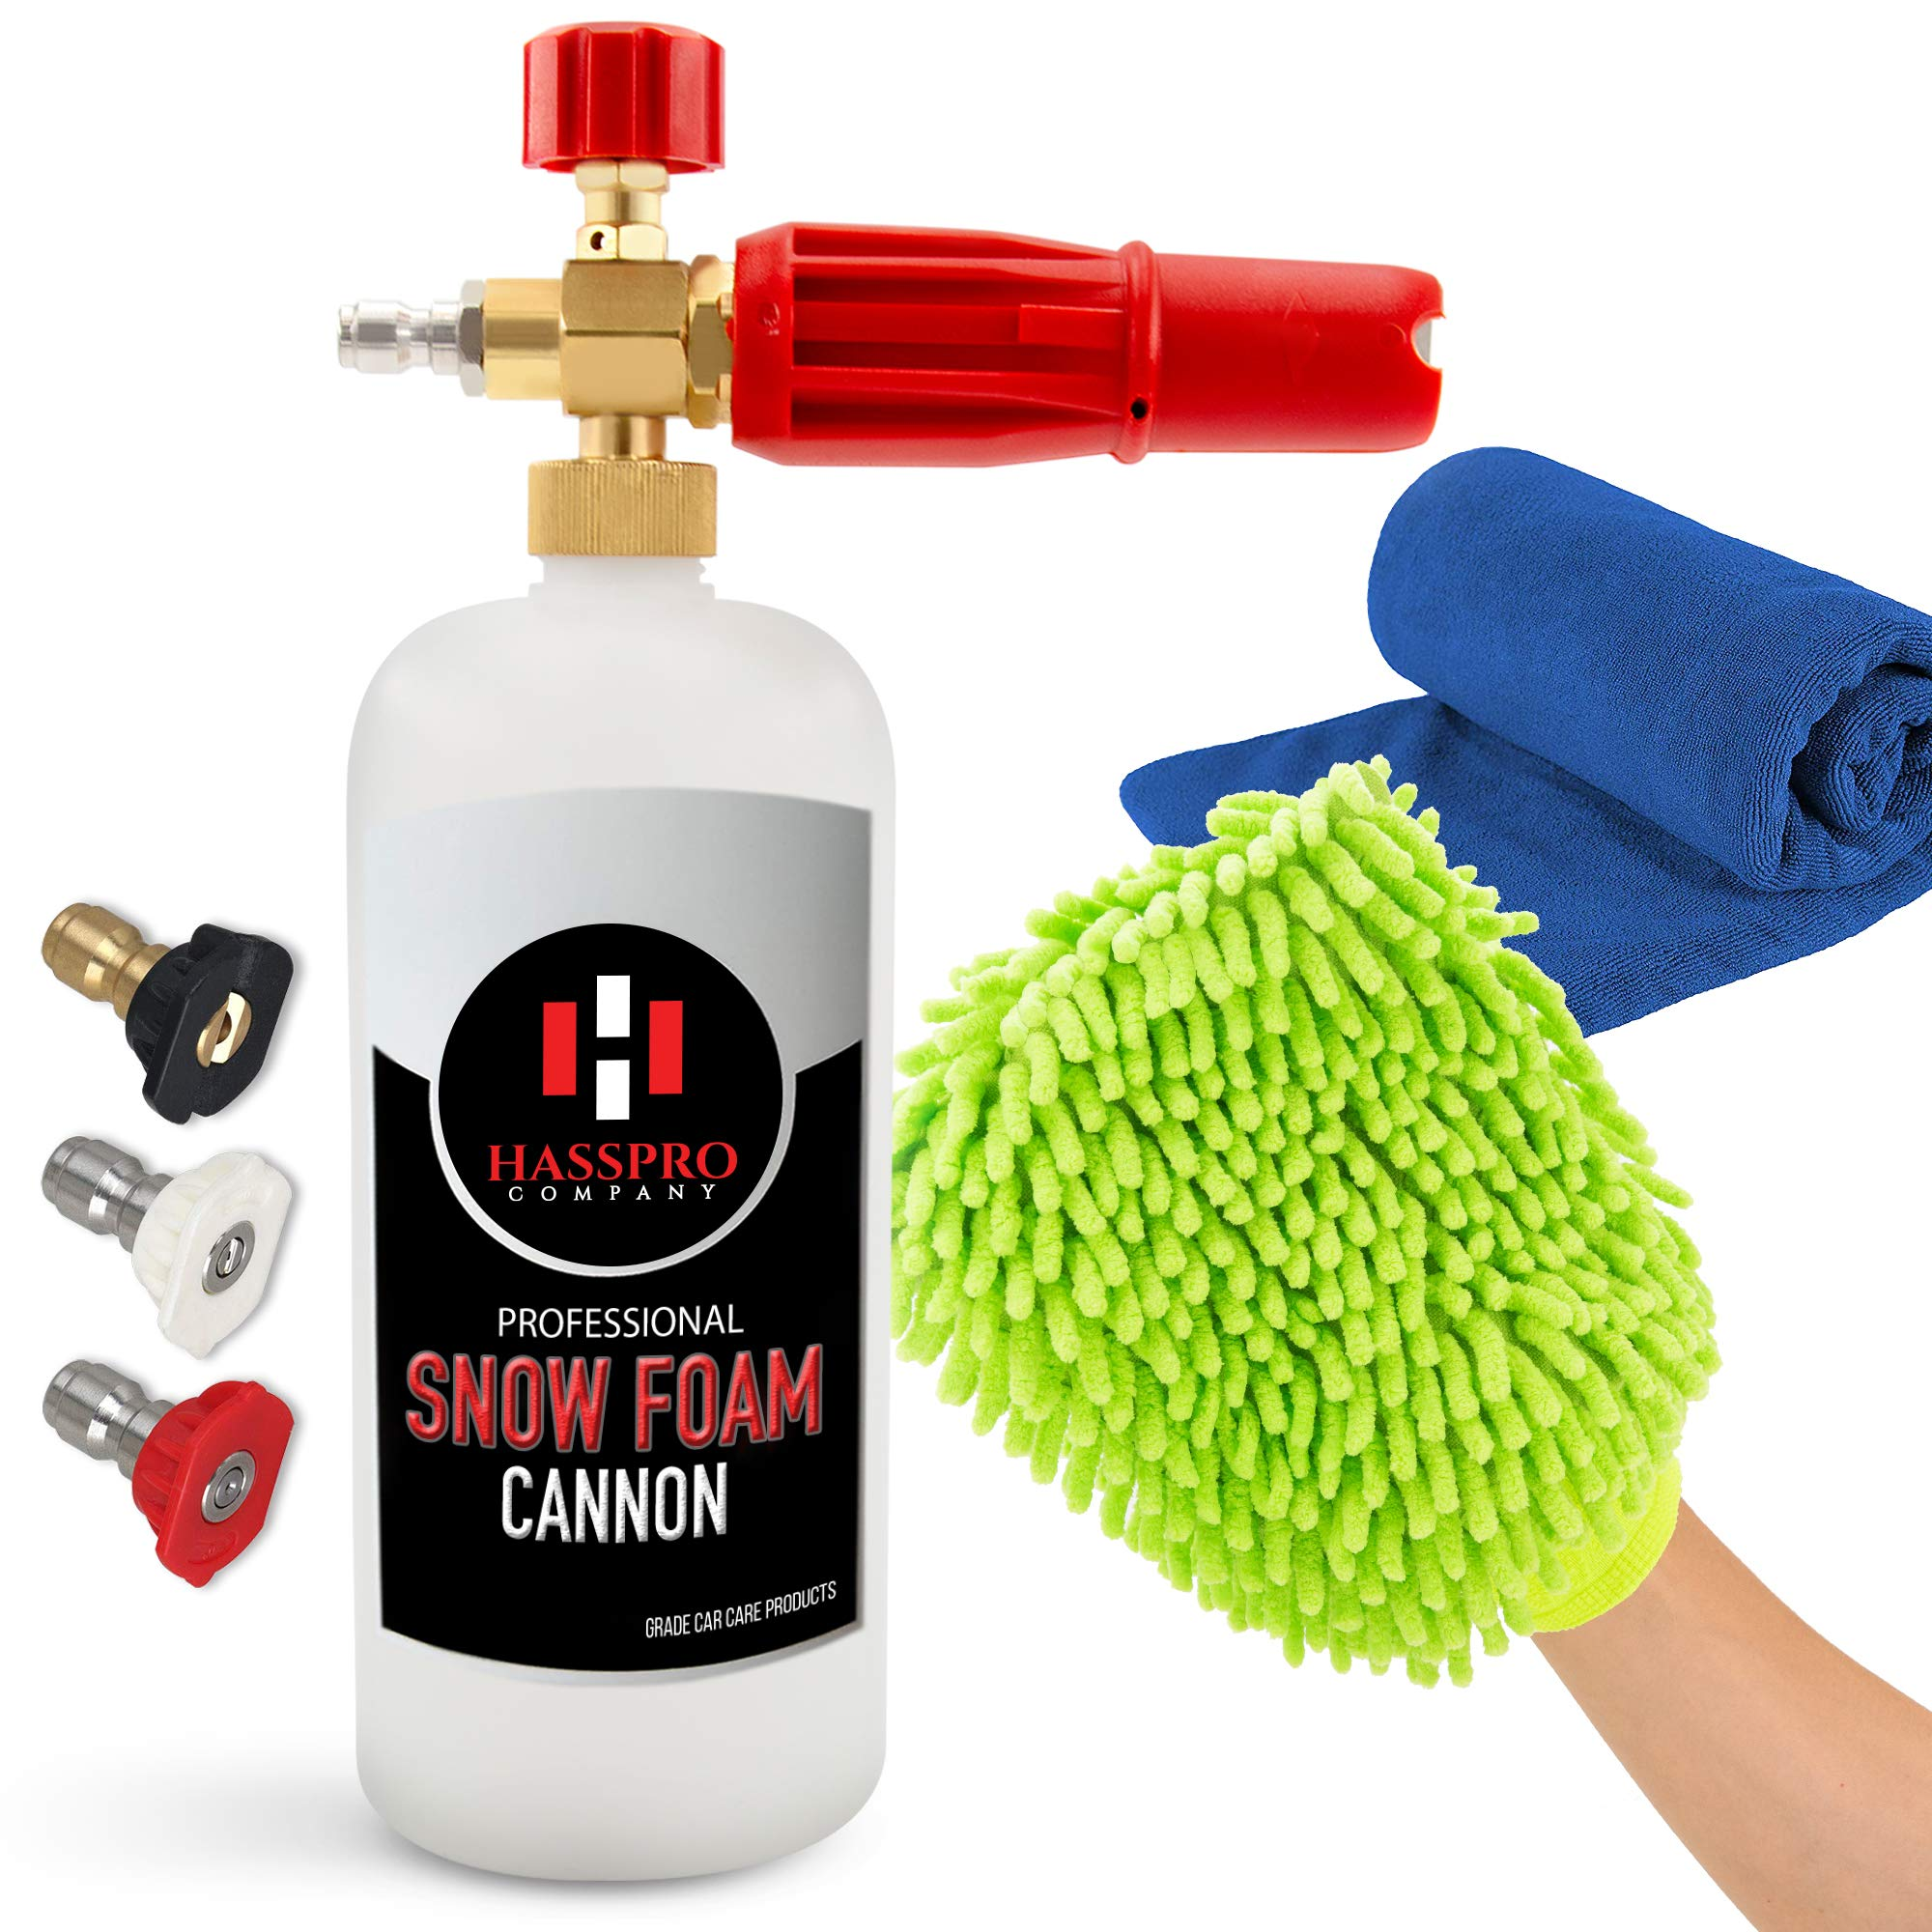 HassPro Foam Cannon Pressure Washer Gun - Premium Quality Foam Blaster 1LT Bottle with 1/4'' Heavy Duty Quick Connector Release - Top Snow Foam Lance Brass Knob - Comes with a Detail Car Cleaning Kit